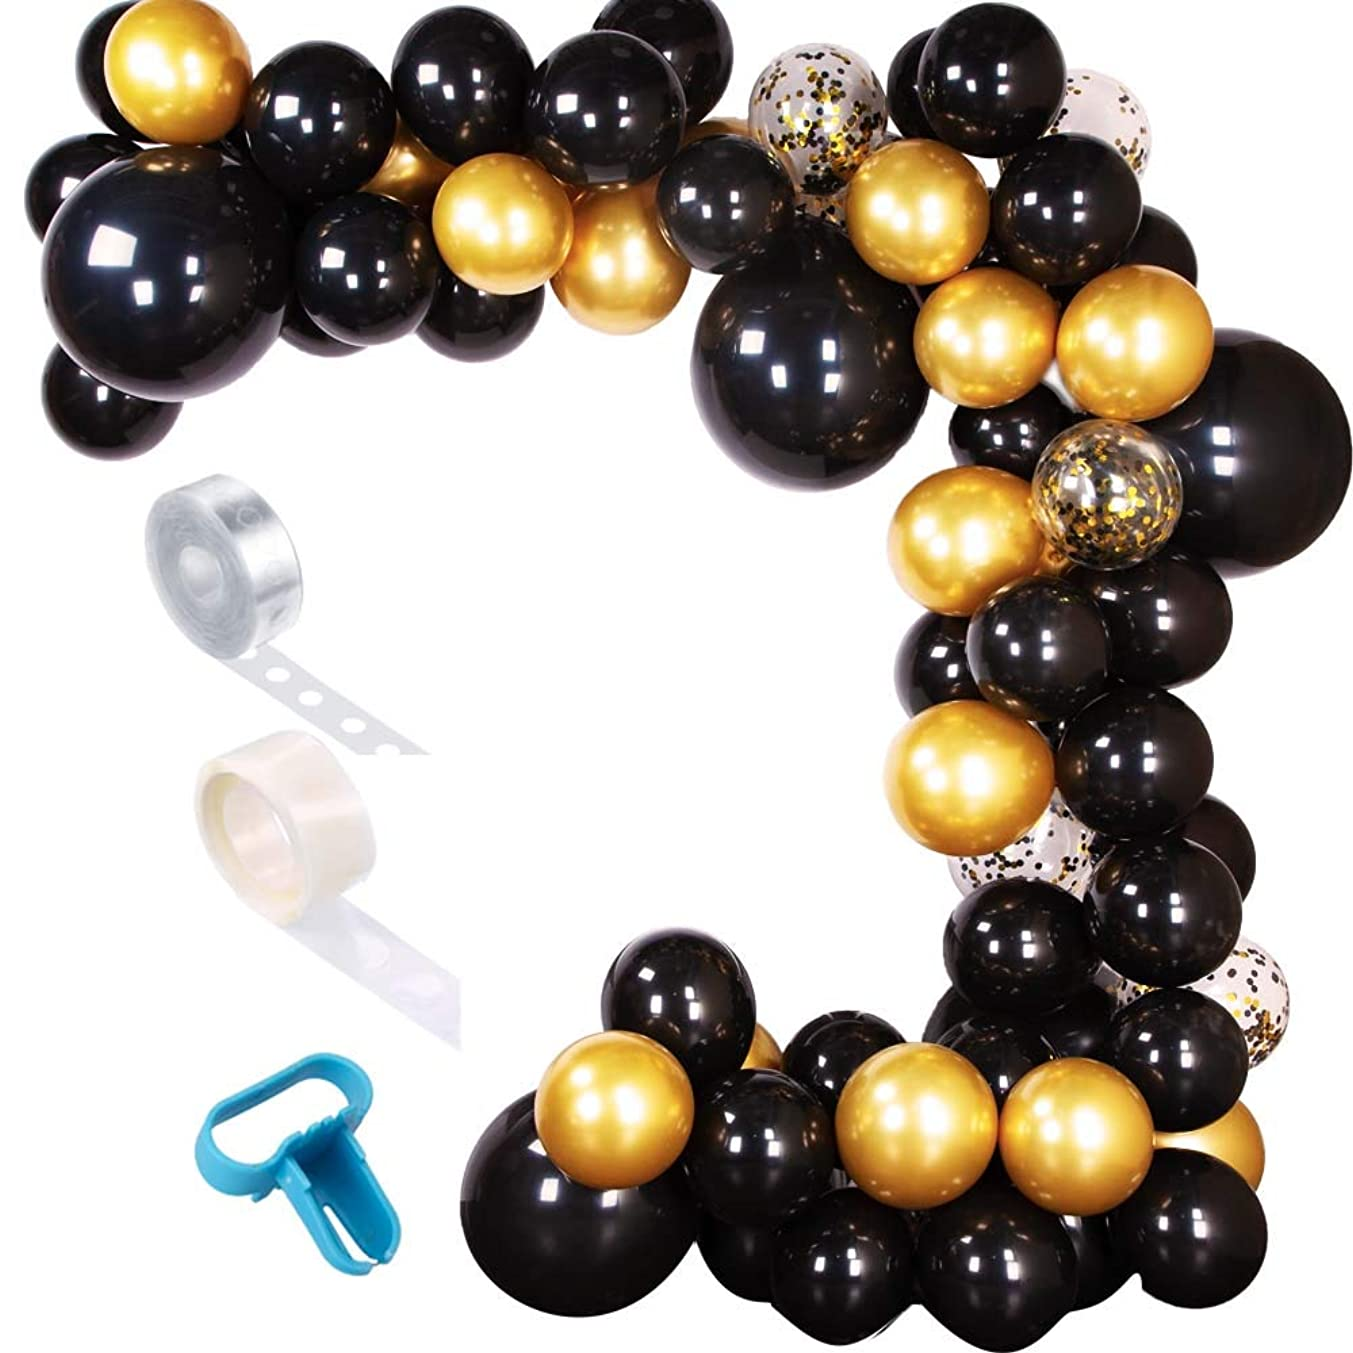 Aimto DIY Balloon Garland Kit Arch Garland Kit for Black and Gold Party Decorations (Black & Gold)